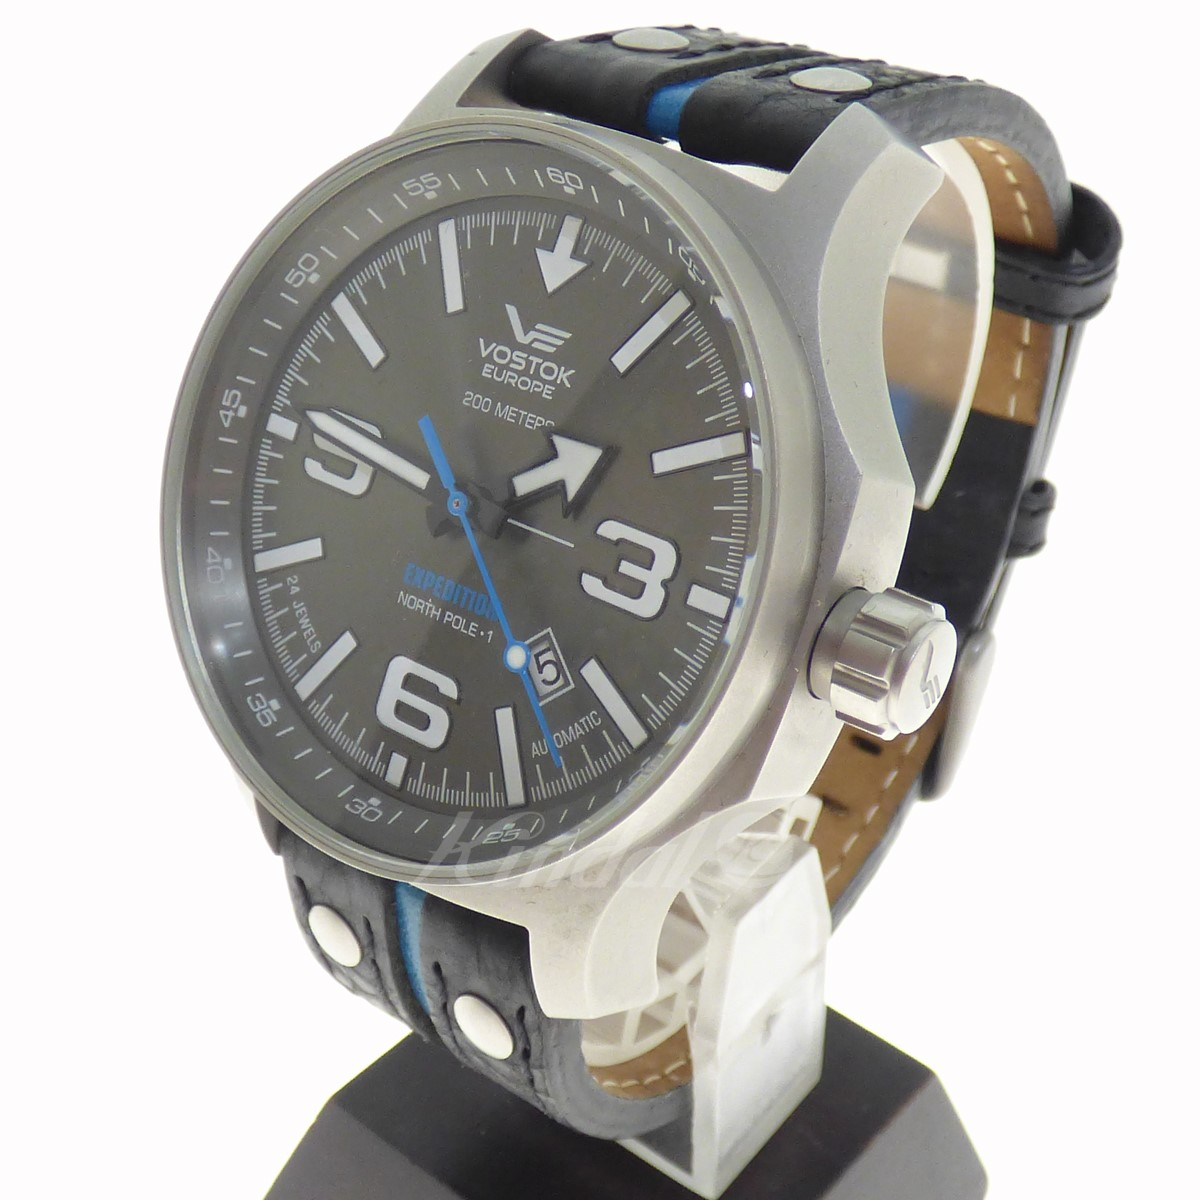 【中古】VOSTOK EUROPE EXPEDITION NORTH POLEI 時計 【送料無料】 【064341】 【KIND1489】